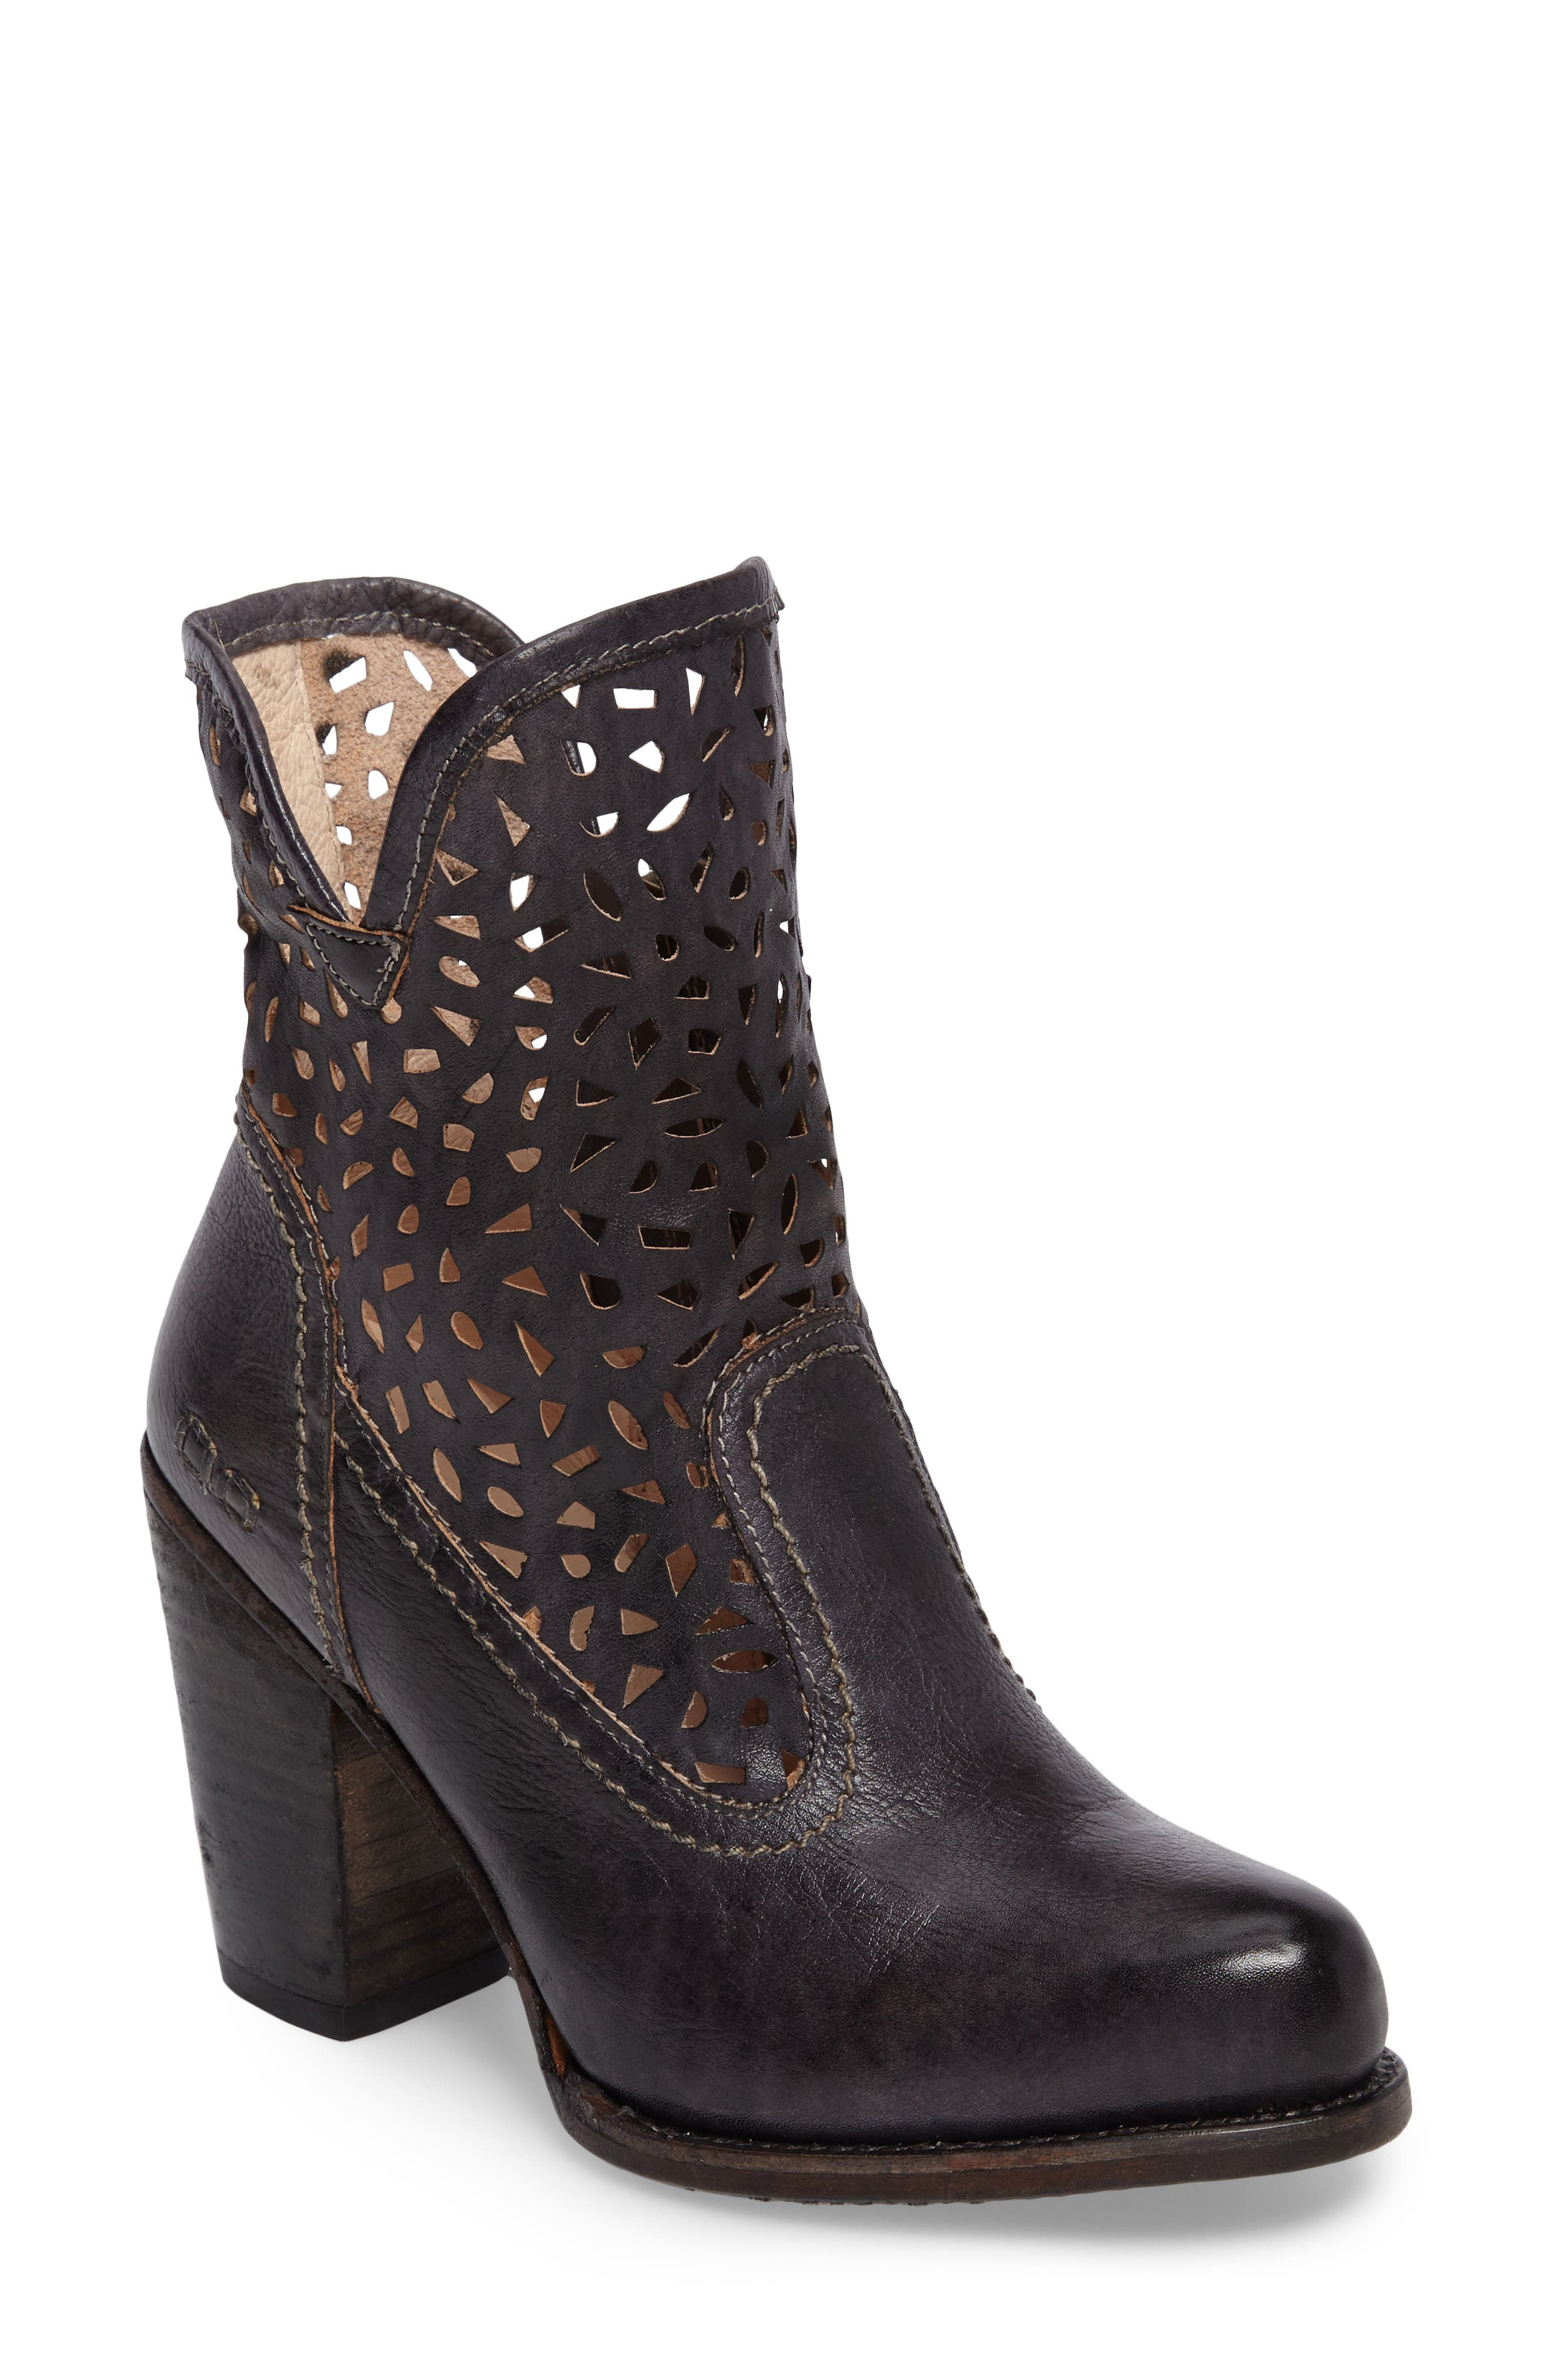 Bed Stu Irma Perforated Boot (Women)